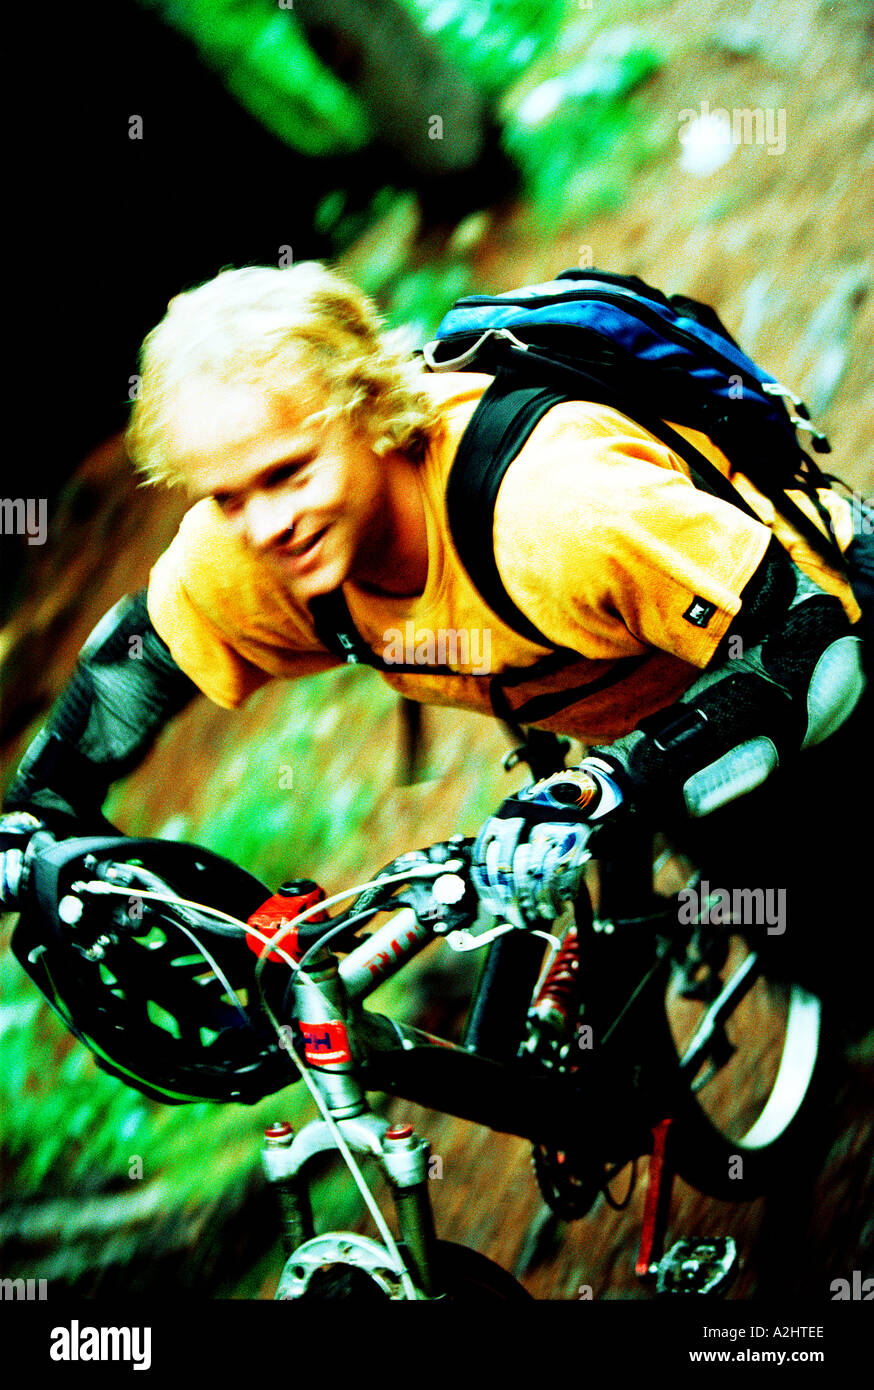 male age 20-25 riding a mountain bike through the woods. The Image shows movement and is in color. - Stock Image